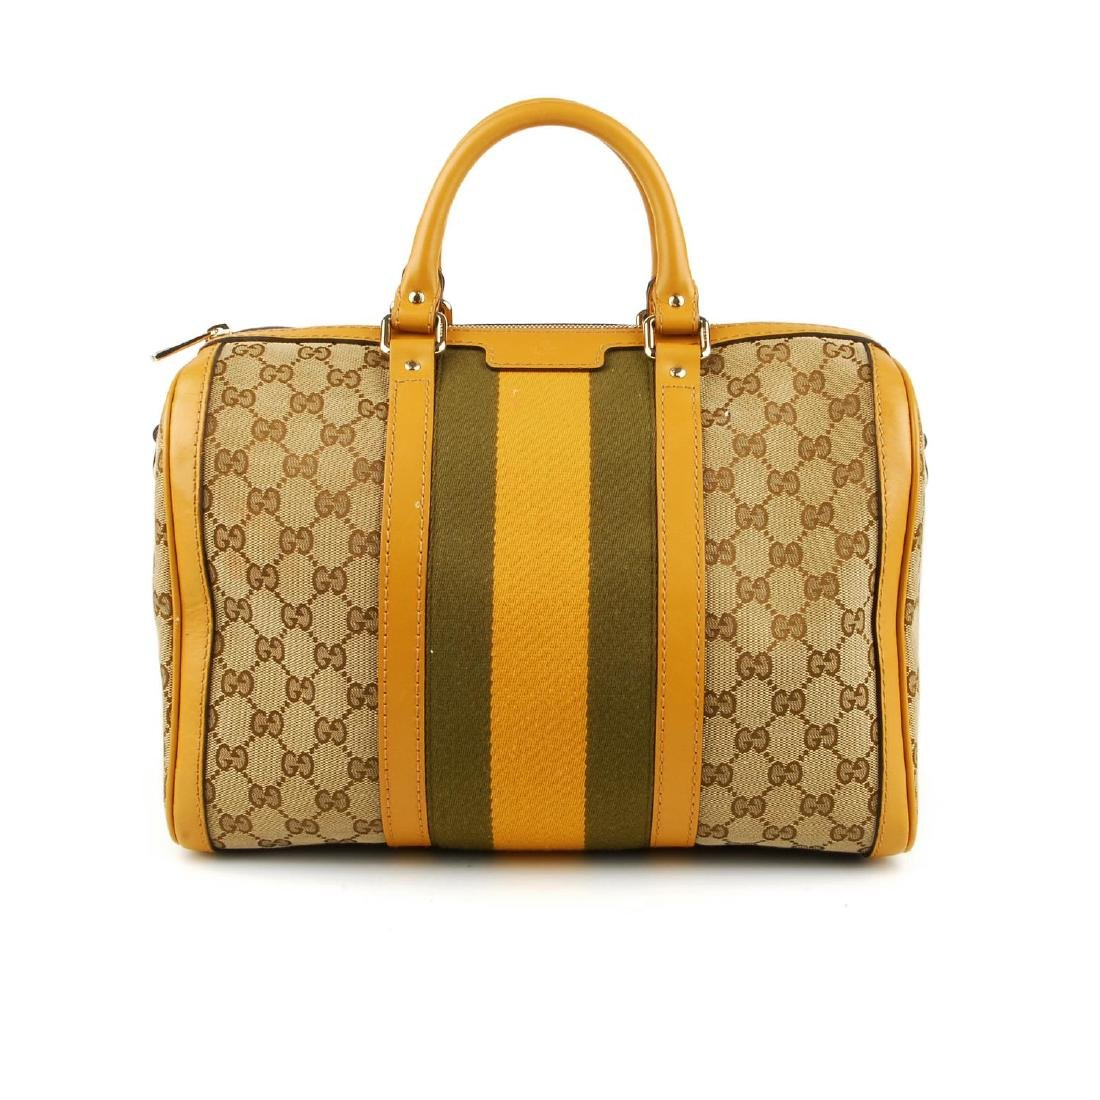 (11907) Two designer handbags. To include a Gucci